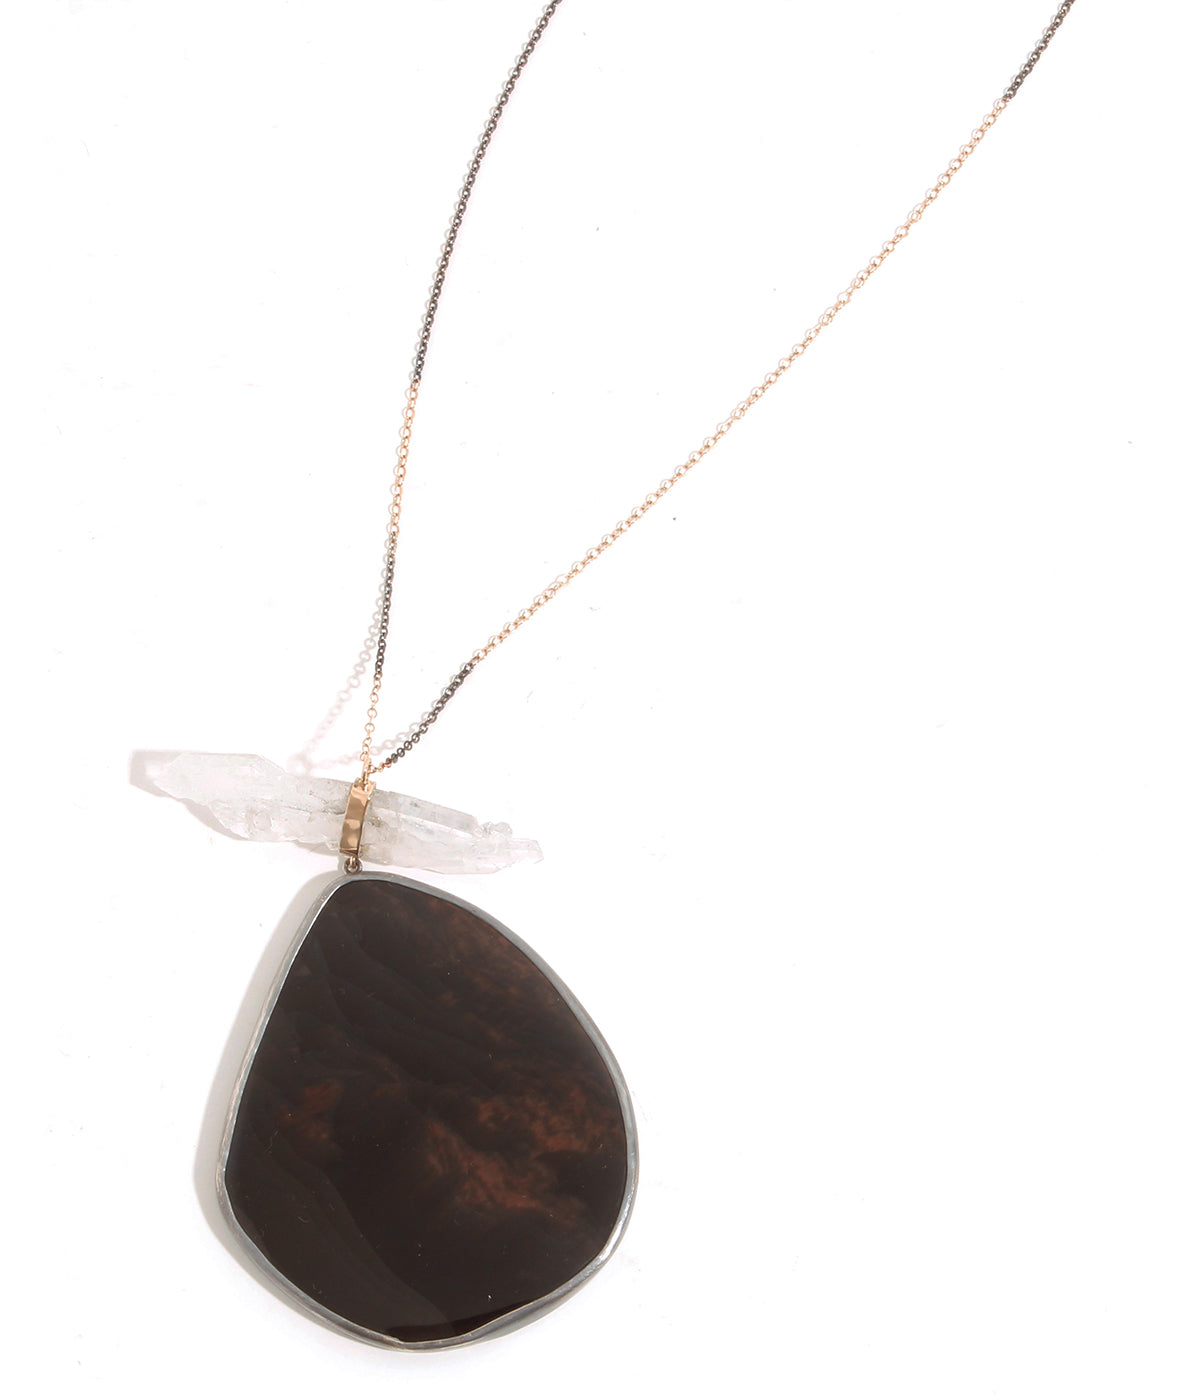 Fadden Quartz and Fire Obsidian Necklace - Melissa Joy Manning Jewelry